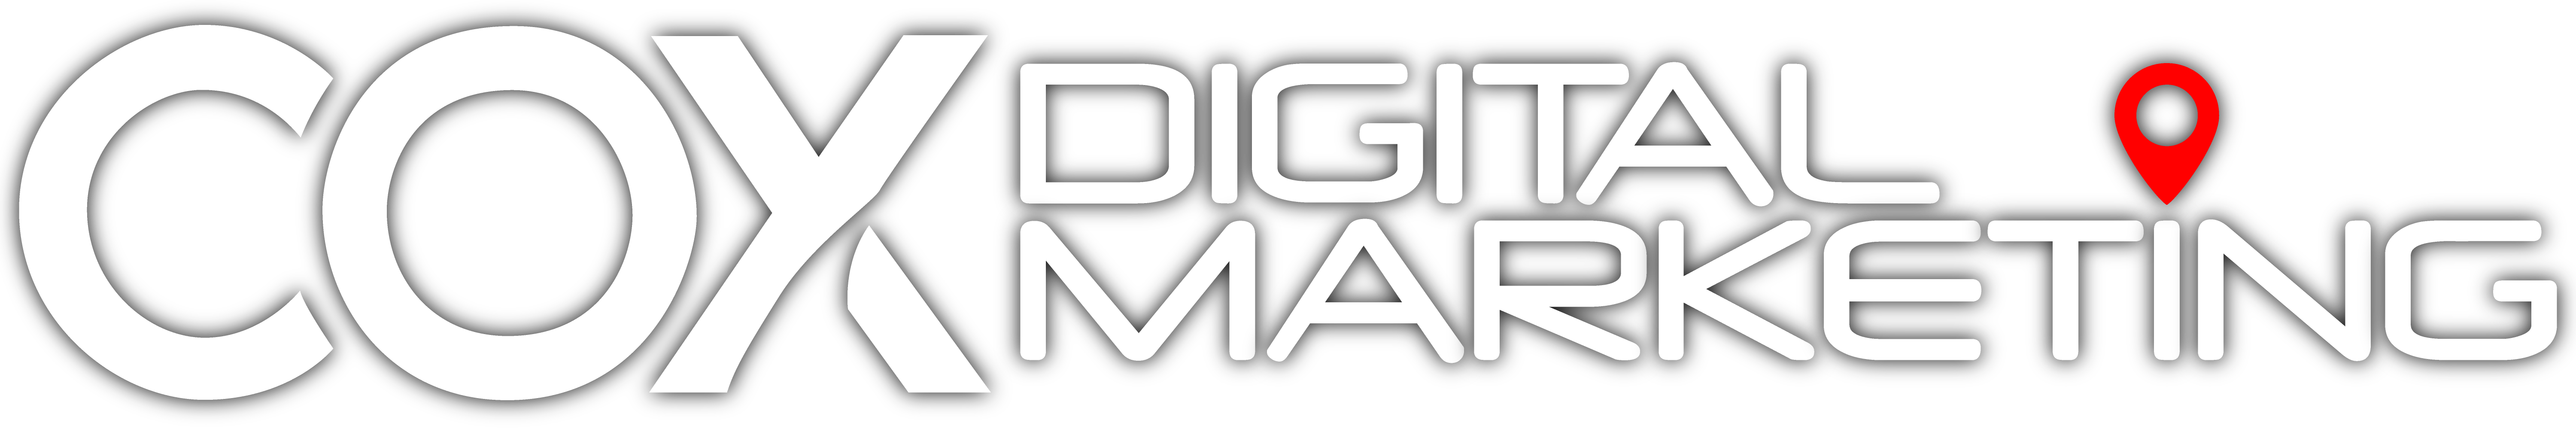 The #1 digital marketing firm in the region is ready to work for you.